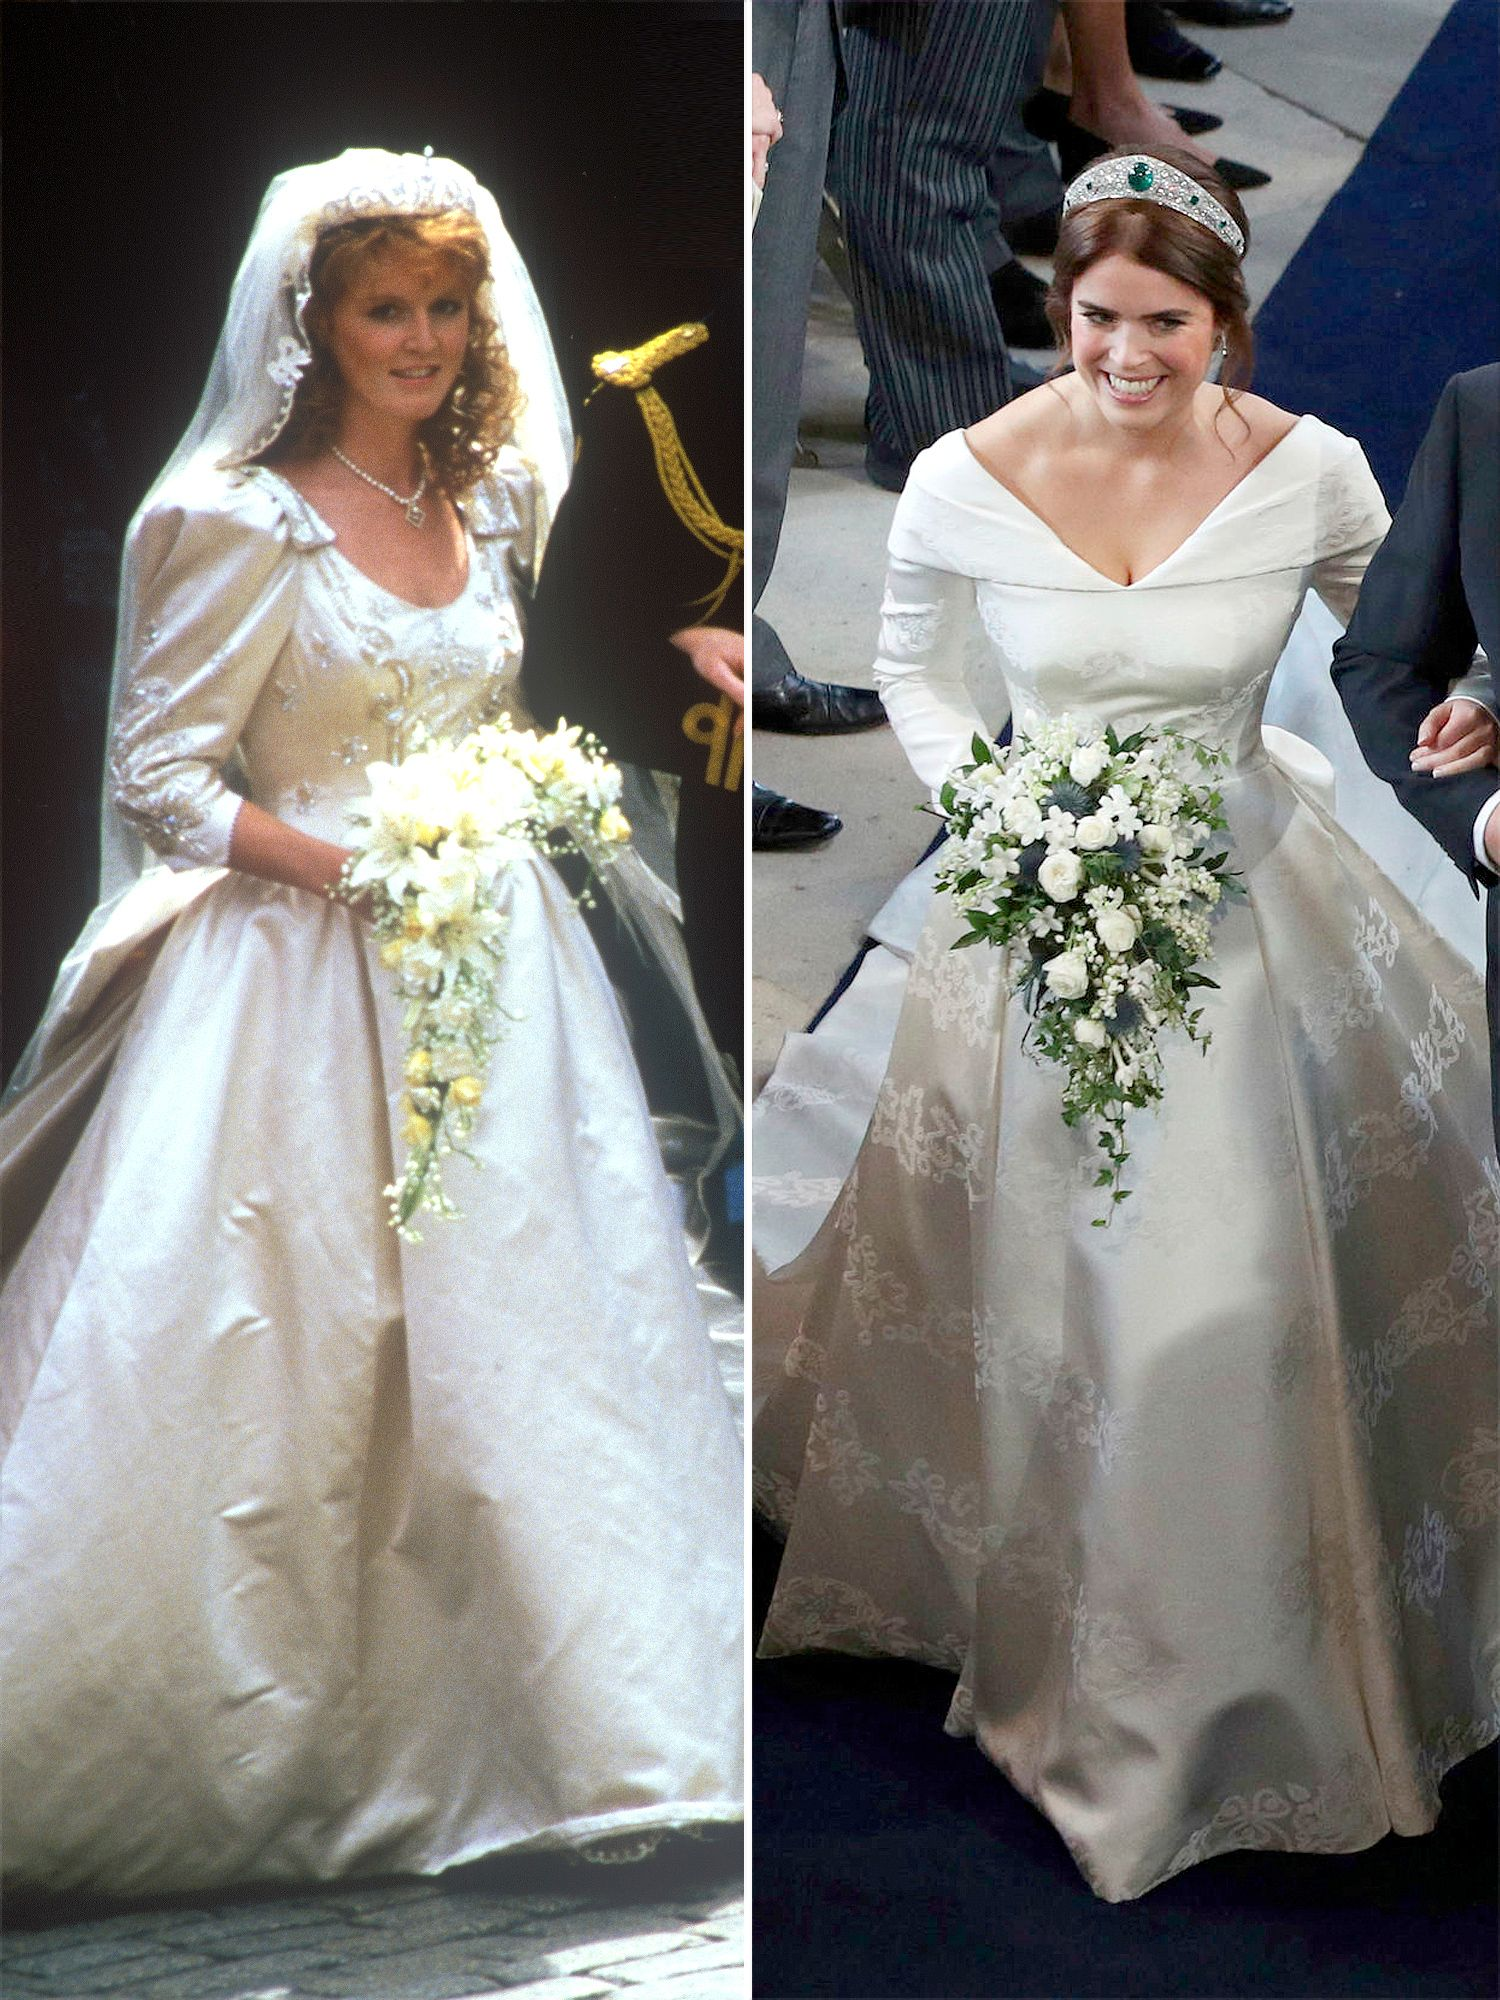 No Puffy Sleeves Here! Comparing Princess Eugenie's